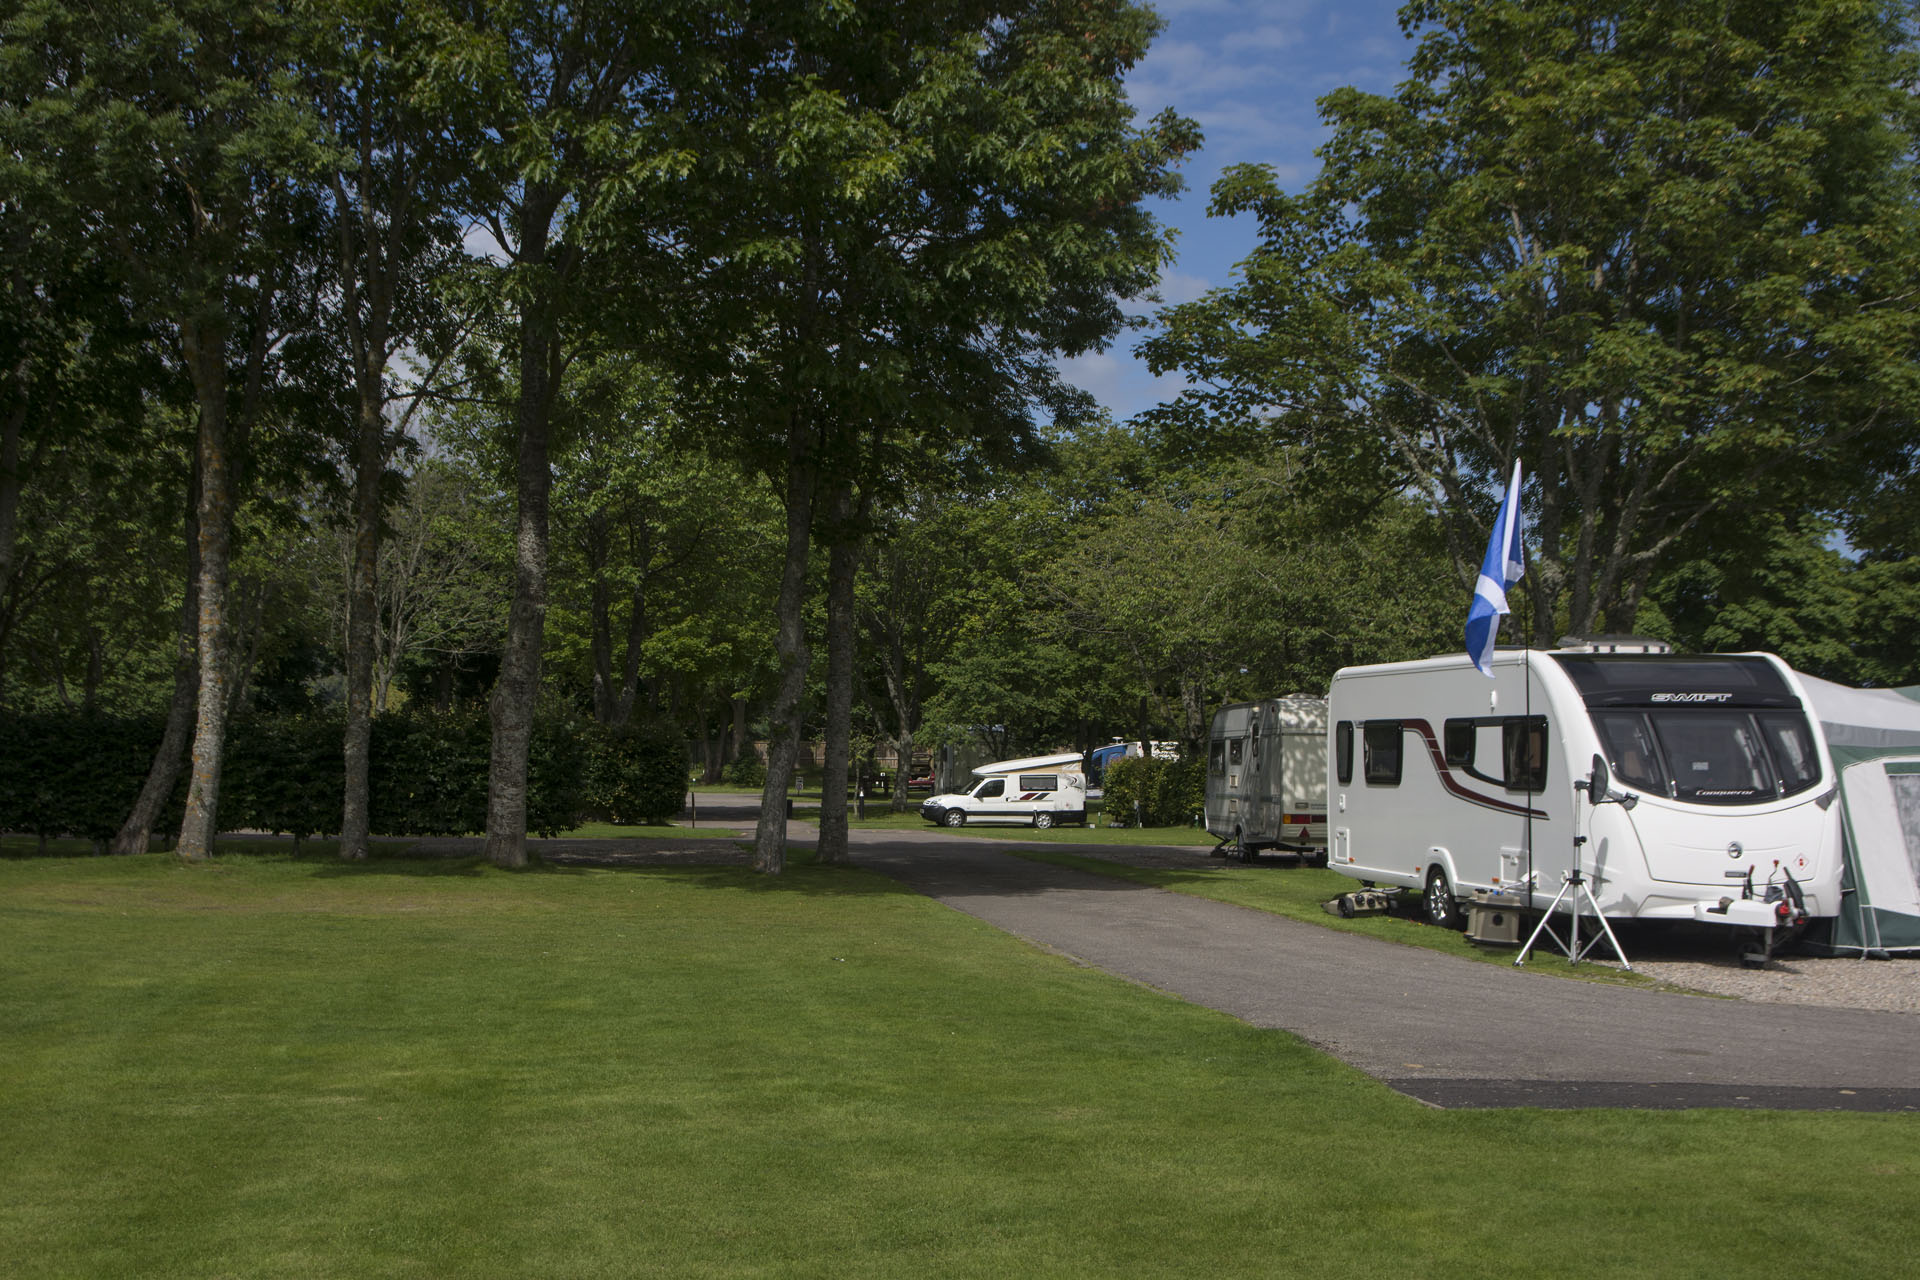 Clitheroe - Camping and Caravanning Club Site - The